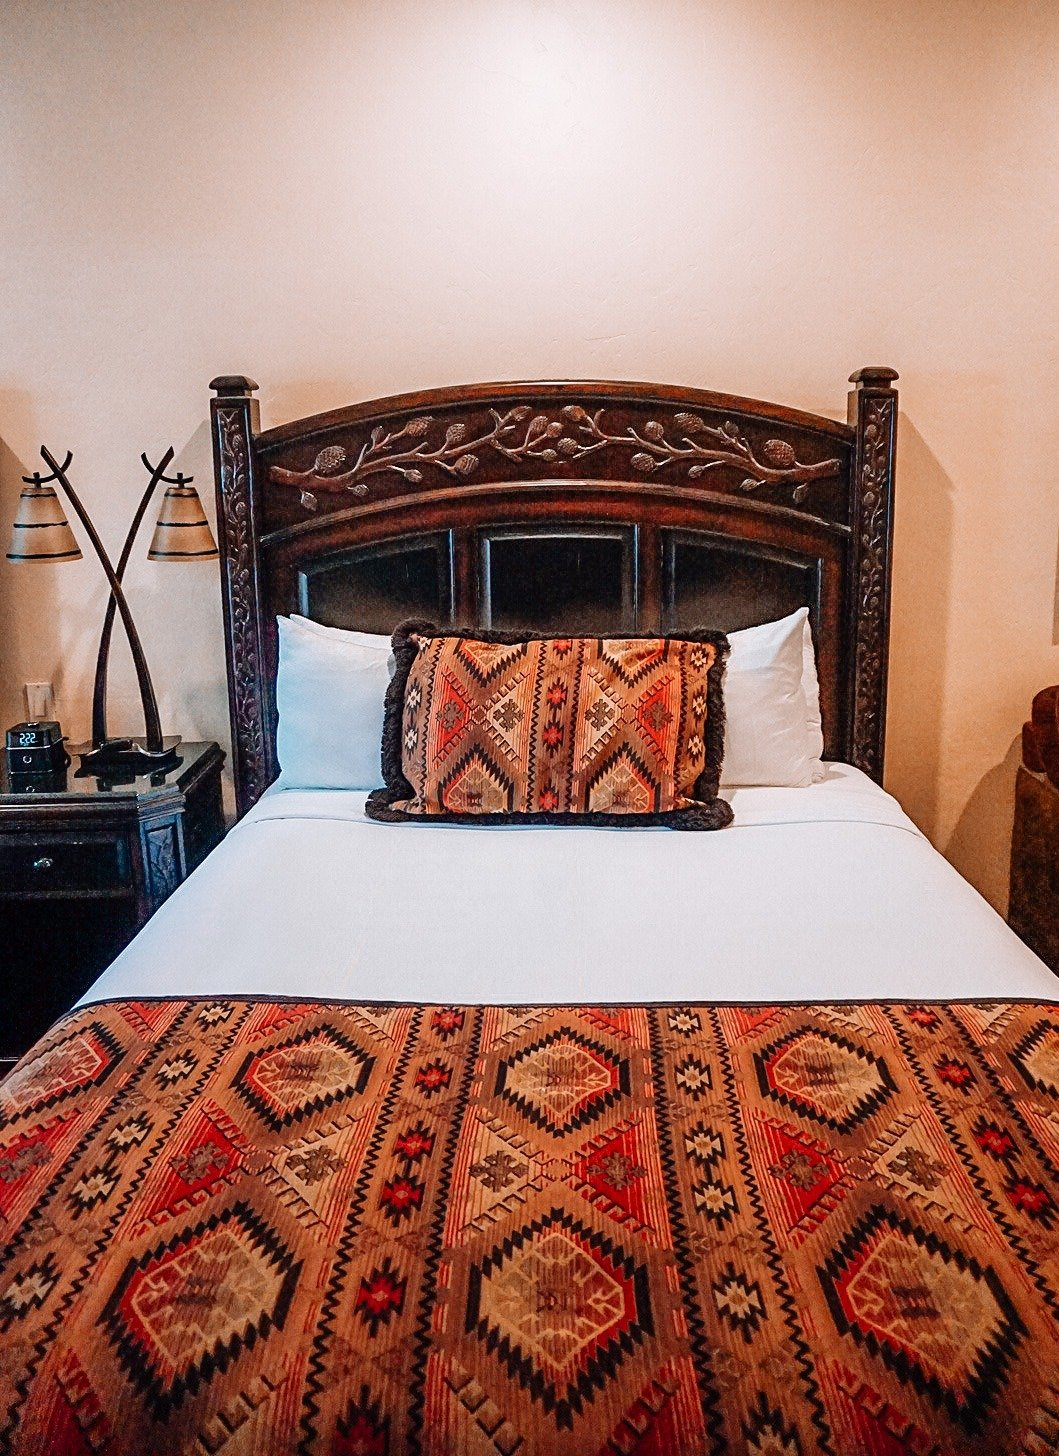 The Lodge at Jackson Hole rooms